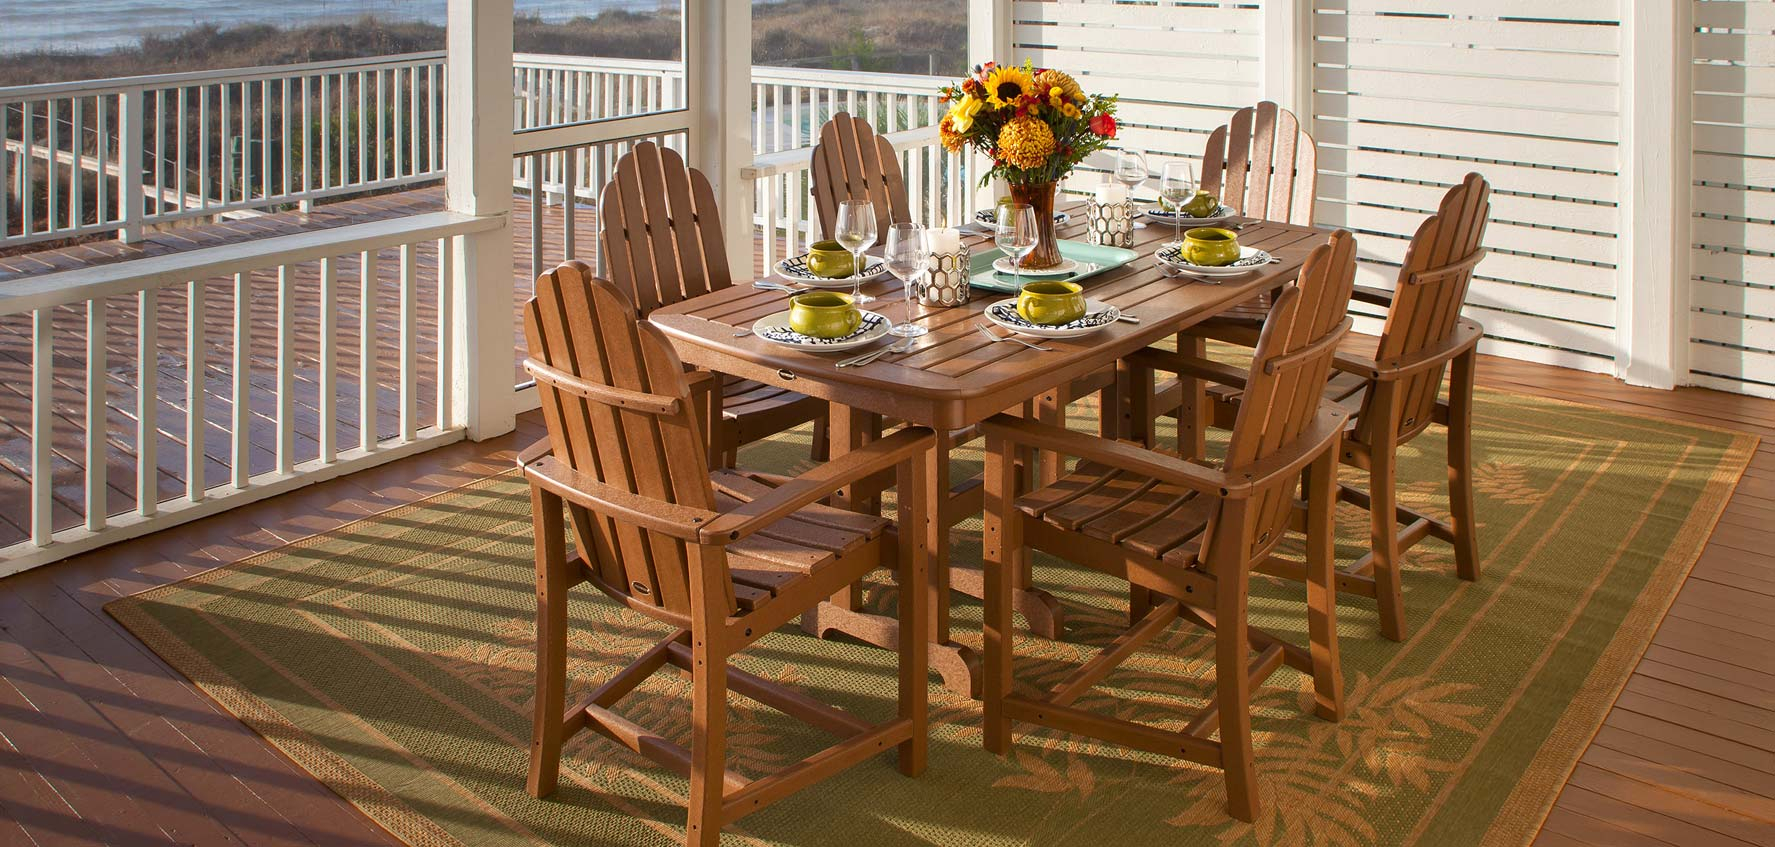 Classic Adirondack Chairs, Benches, & Gliders – Vermont Intended For Classic Adirondack Glider Benches (View 12 of 25)